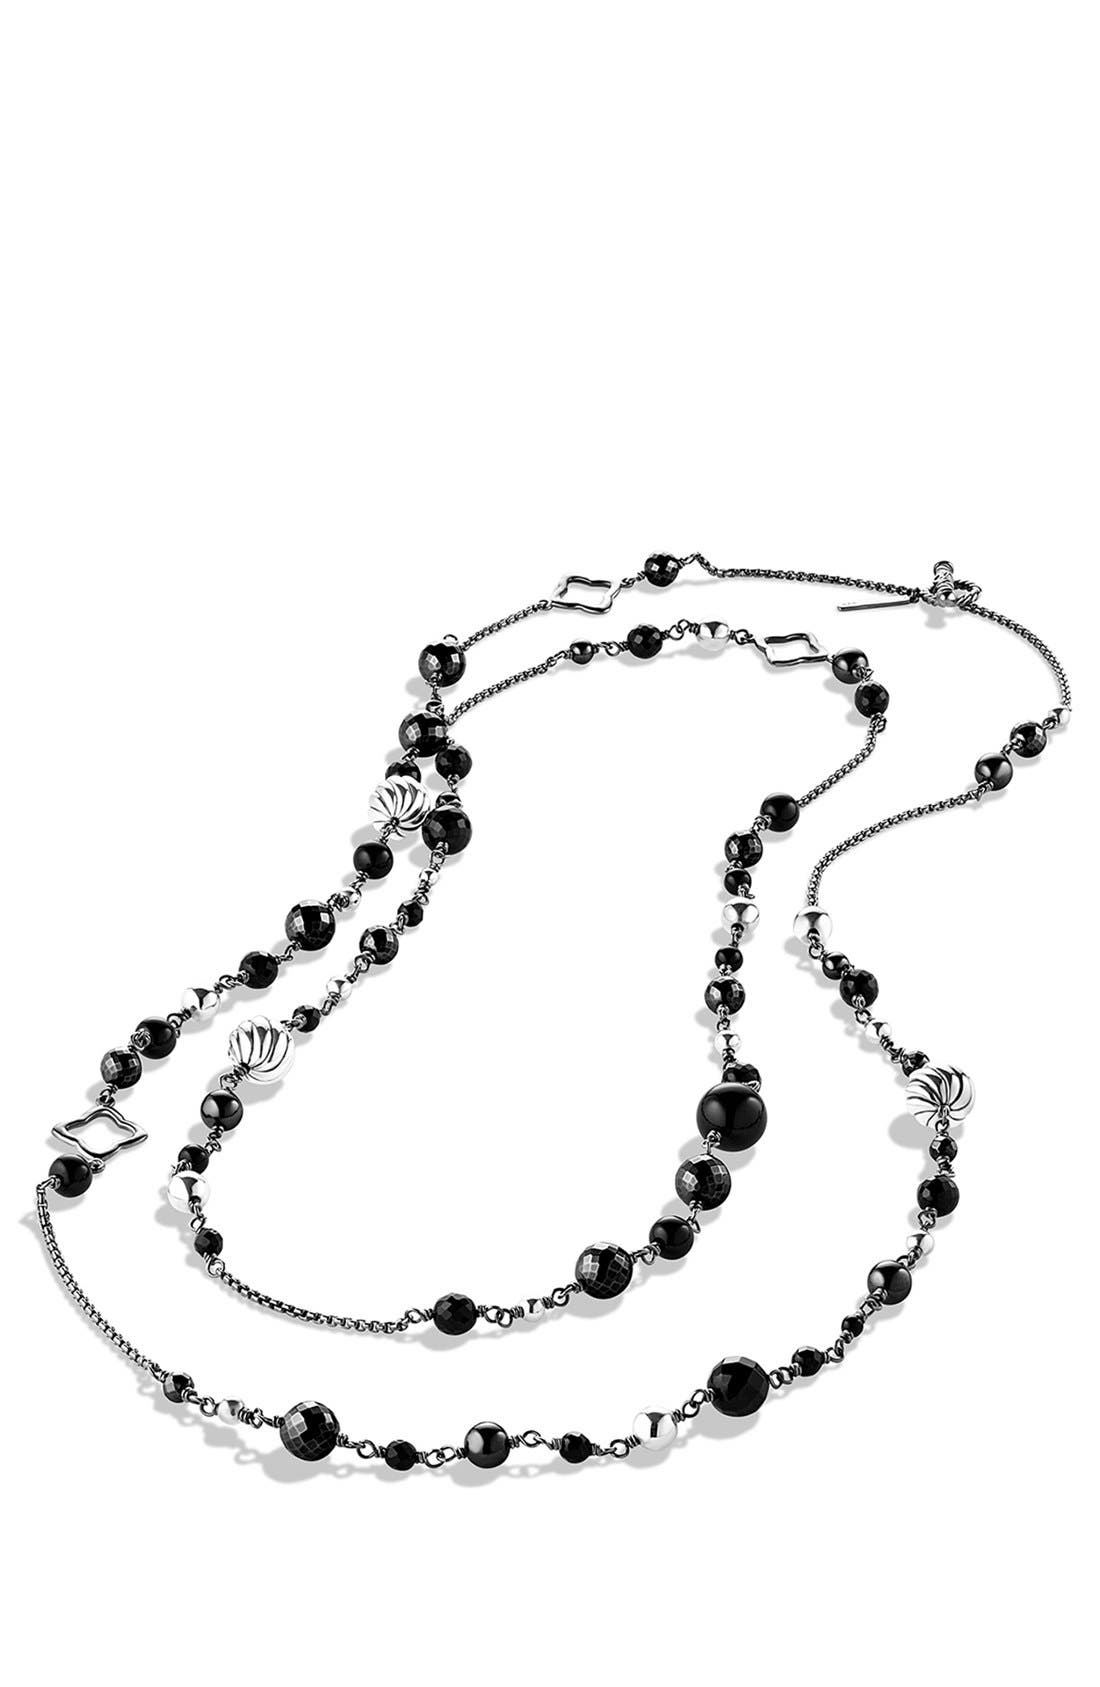 Alternate Image 2  - David Yurman 'DY Elements' Chain Necklace with Black Onyx and Hematine